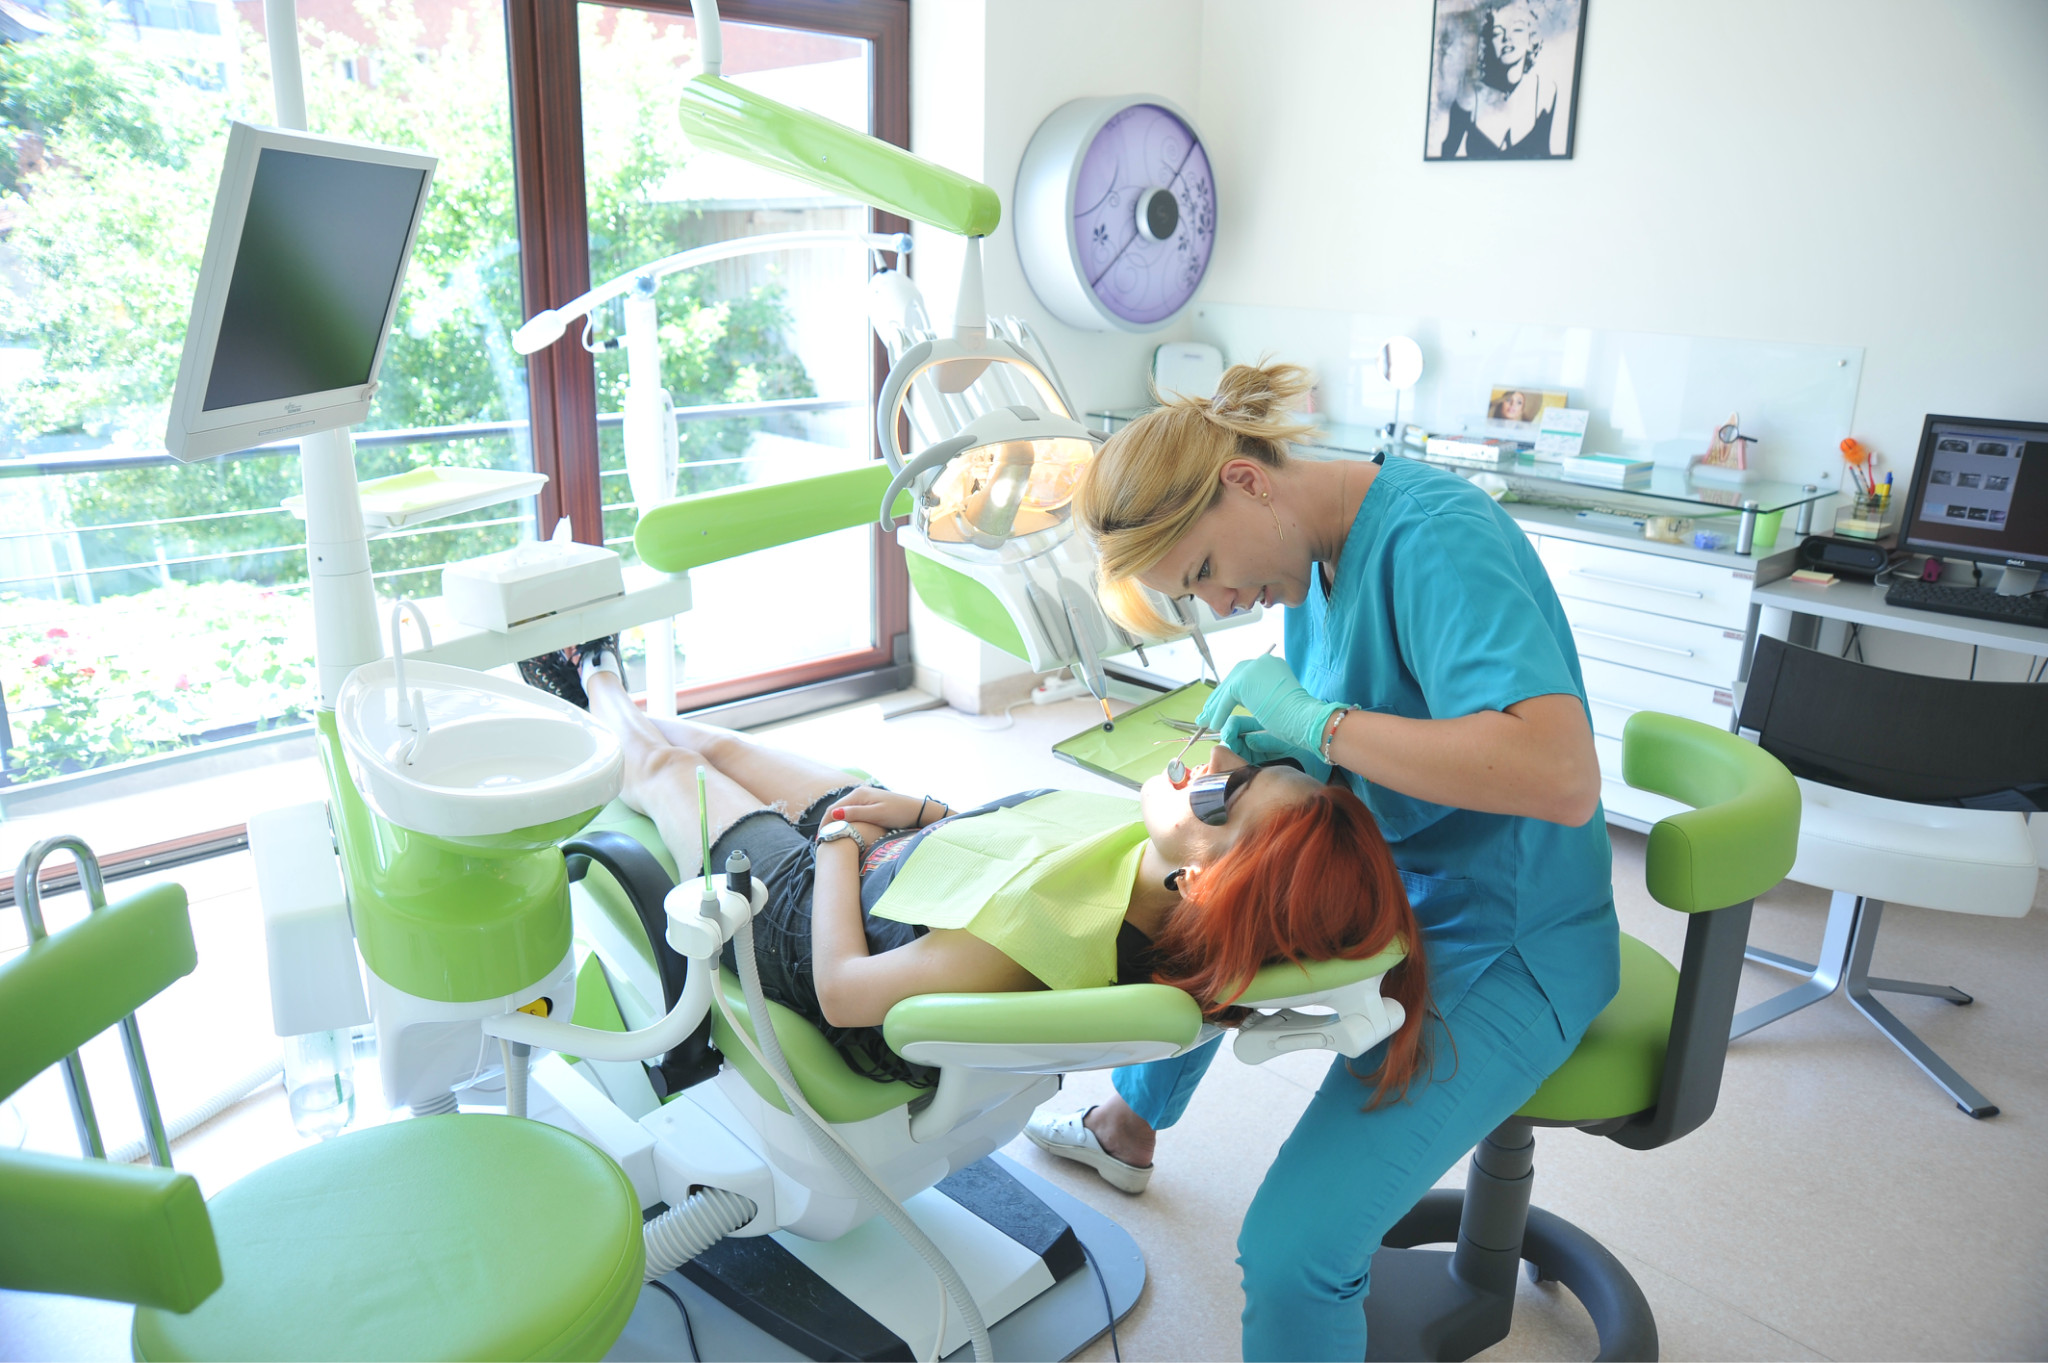 Free dental clinic for uninsured to open in June in Contra Costa County